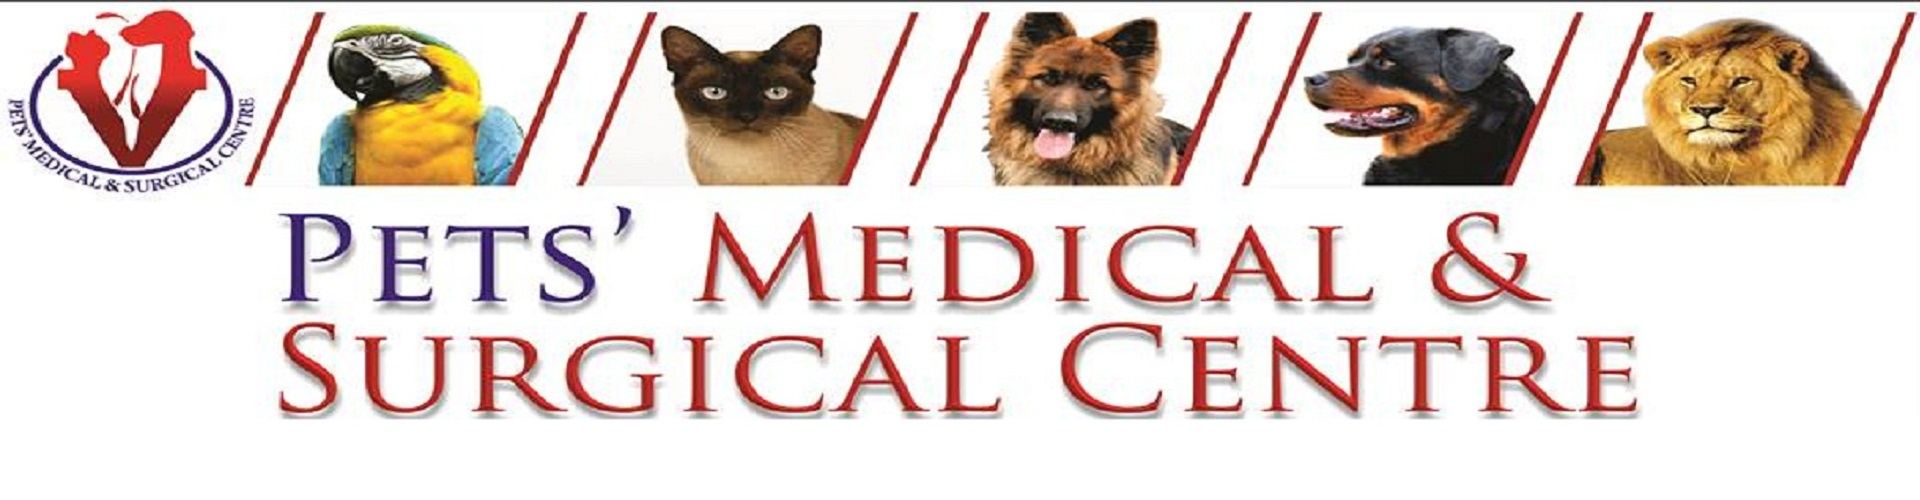 Pets medical  surgical centre model town